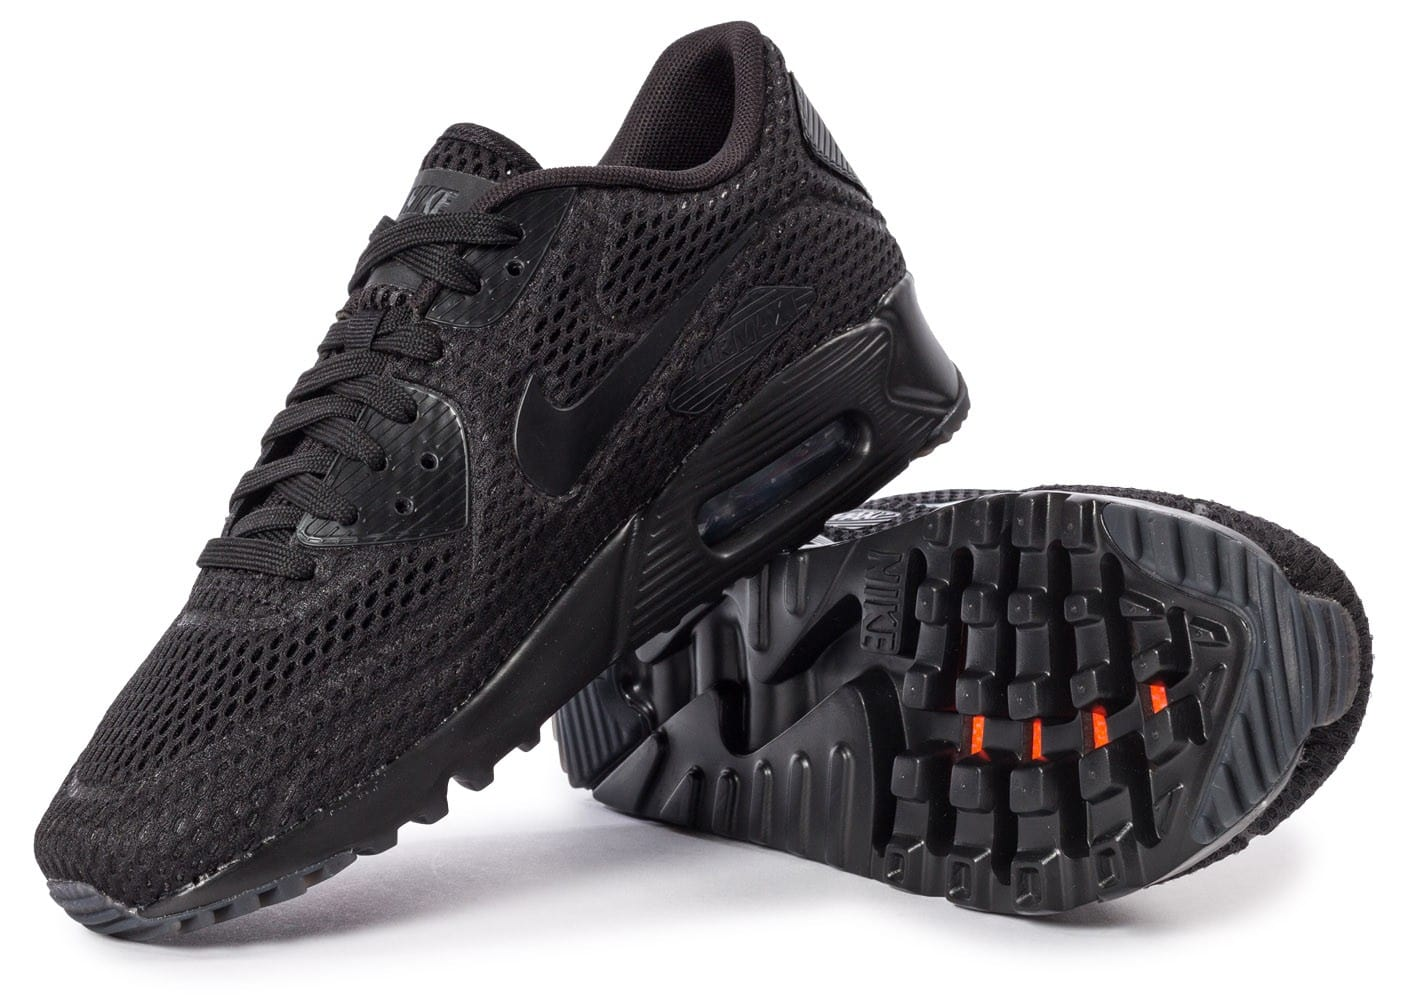 a6007241dae Nike Air Max 90 Ultra BR noire - Chaussures Baskets homme - Chausport